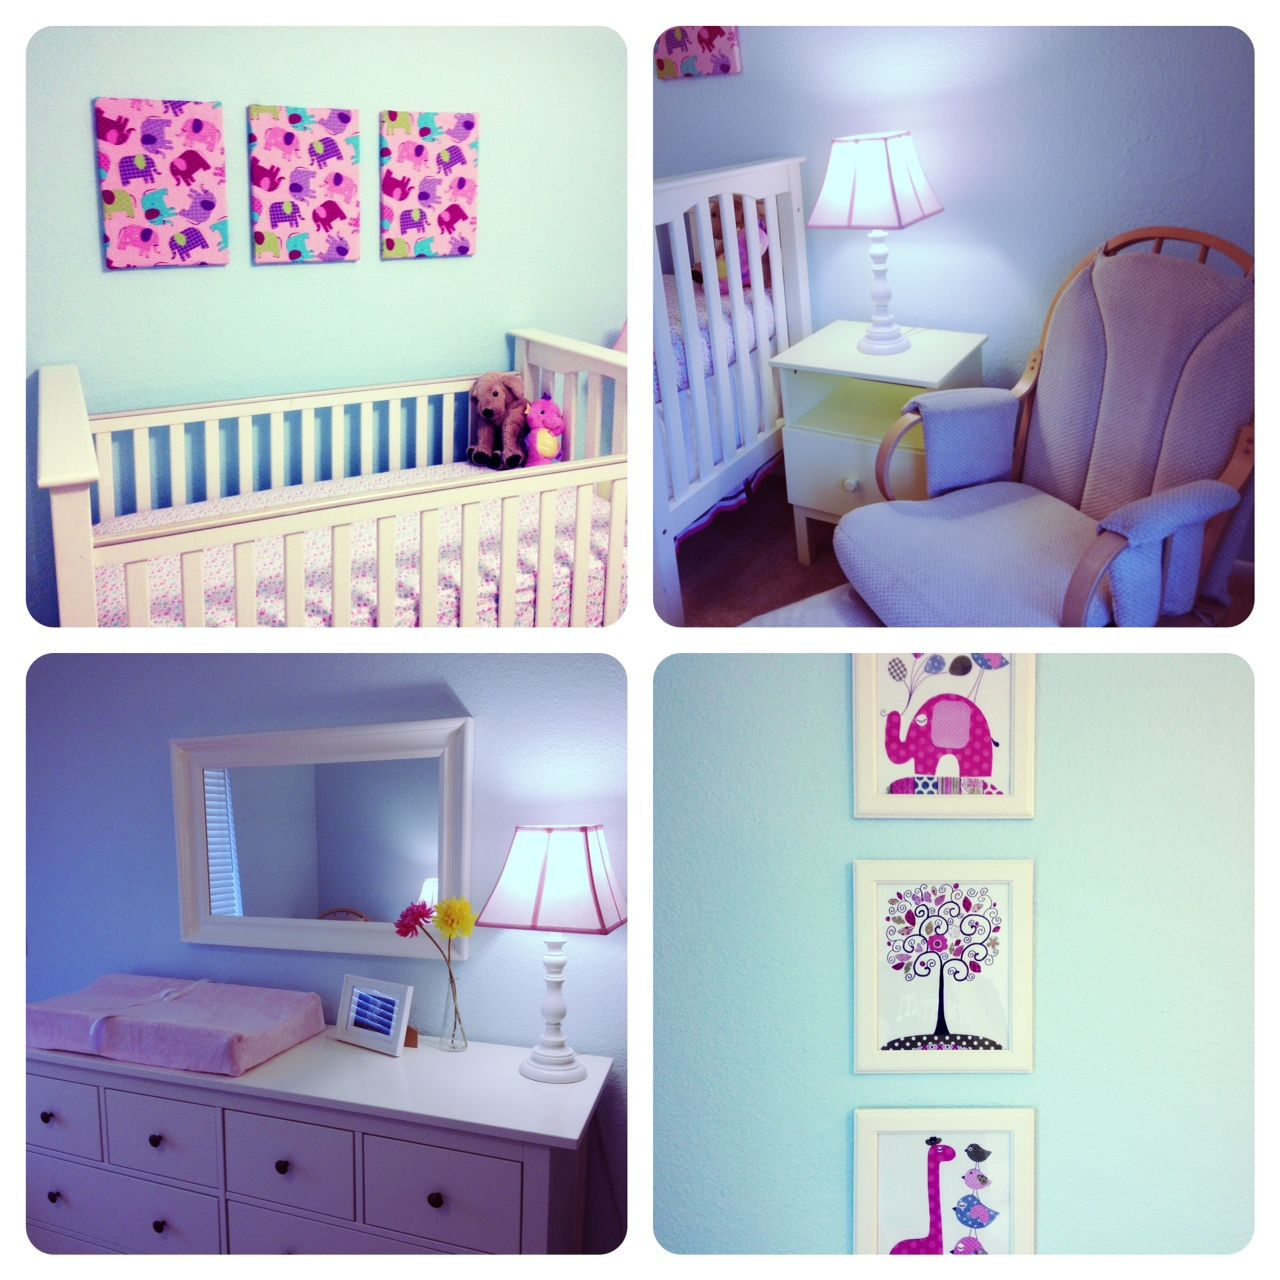 Baby cribs on craigslist - Pottery Barn Kendall Crib Ikea Hemnes Dresser Mirror Diy Material Covered Canvas